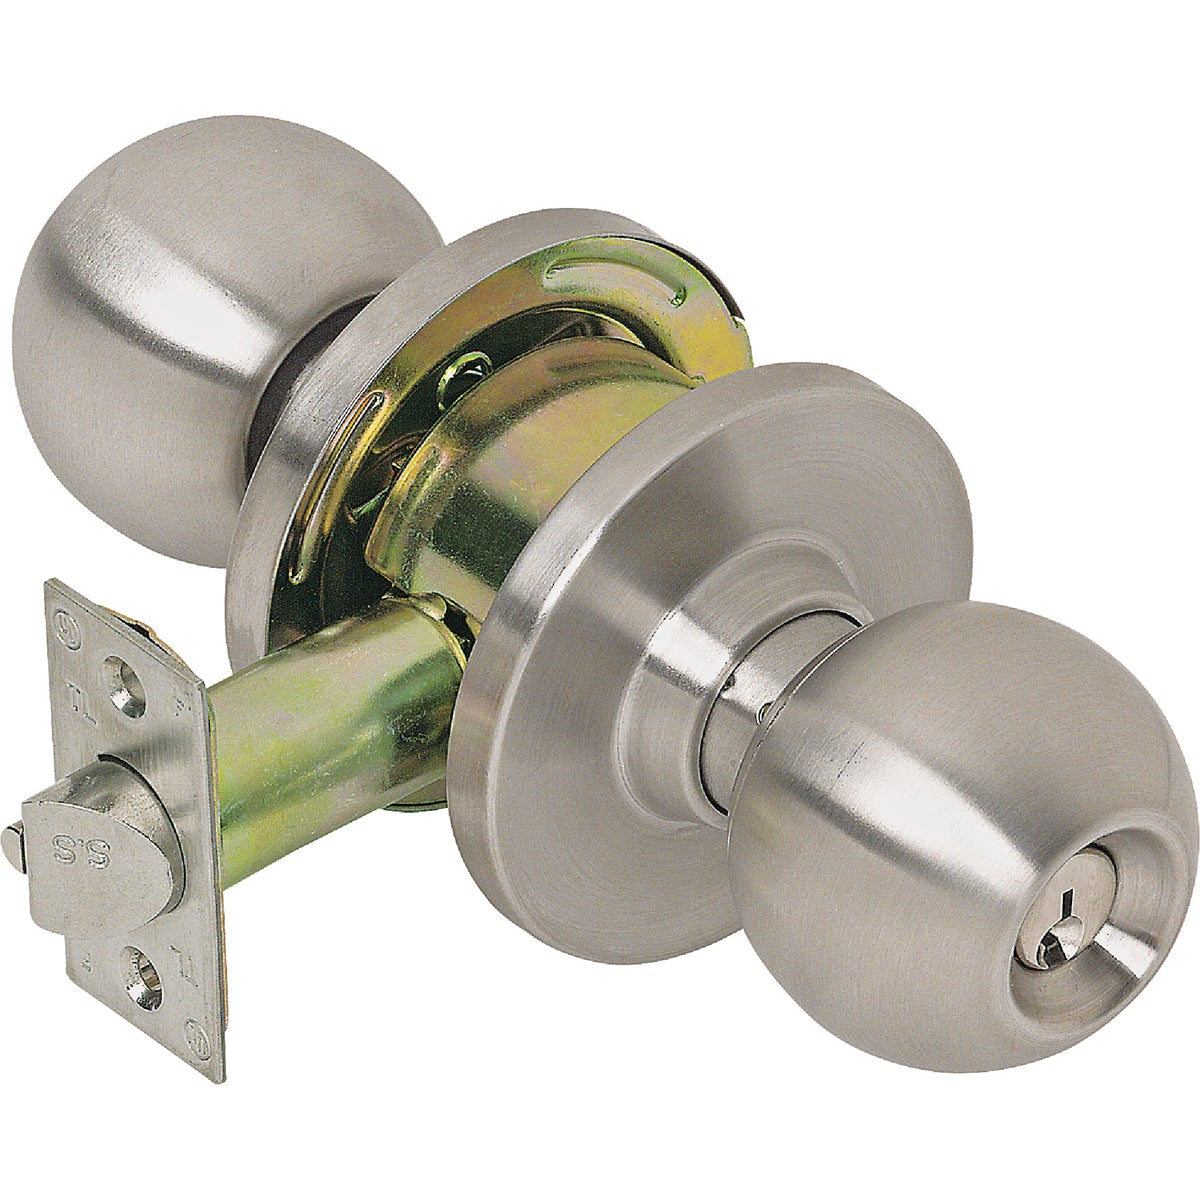 Tell Manufacturing CL100006 Storeroom Lockset, Satin Stainless Steel